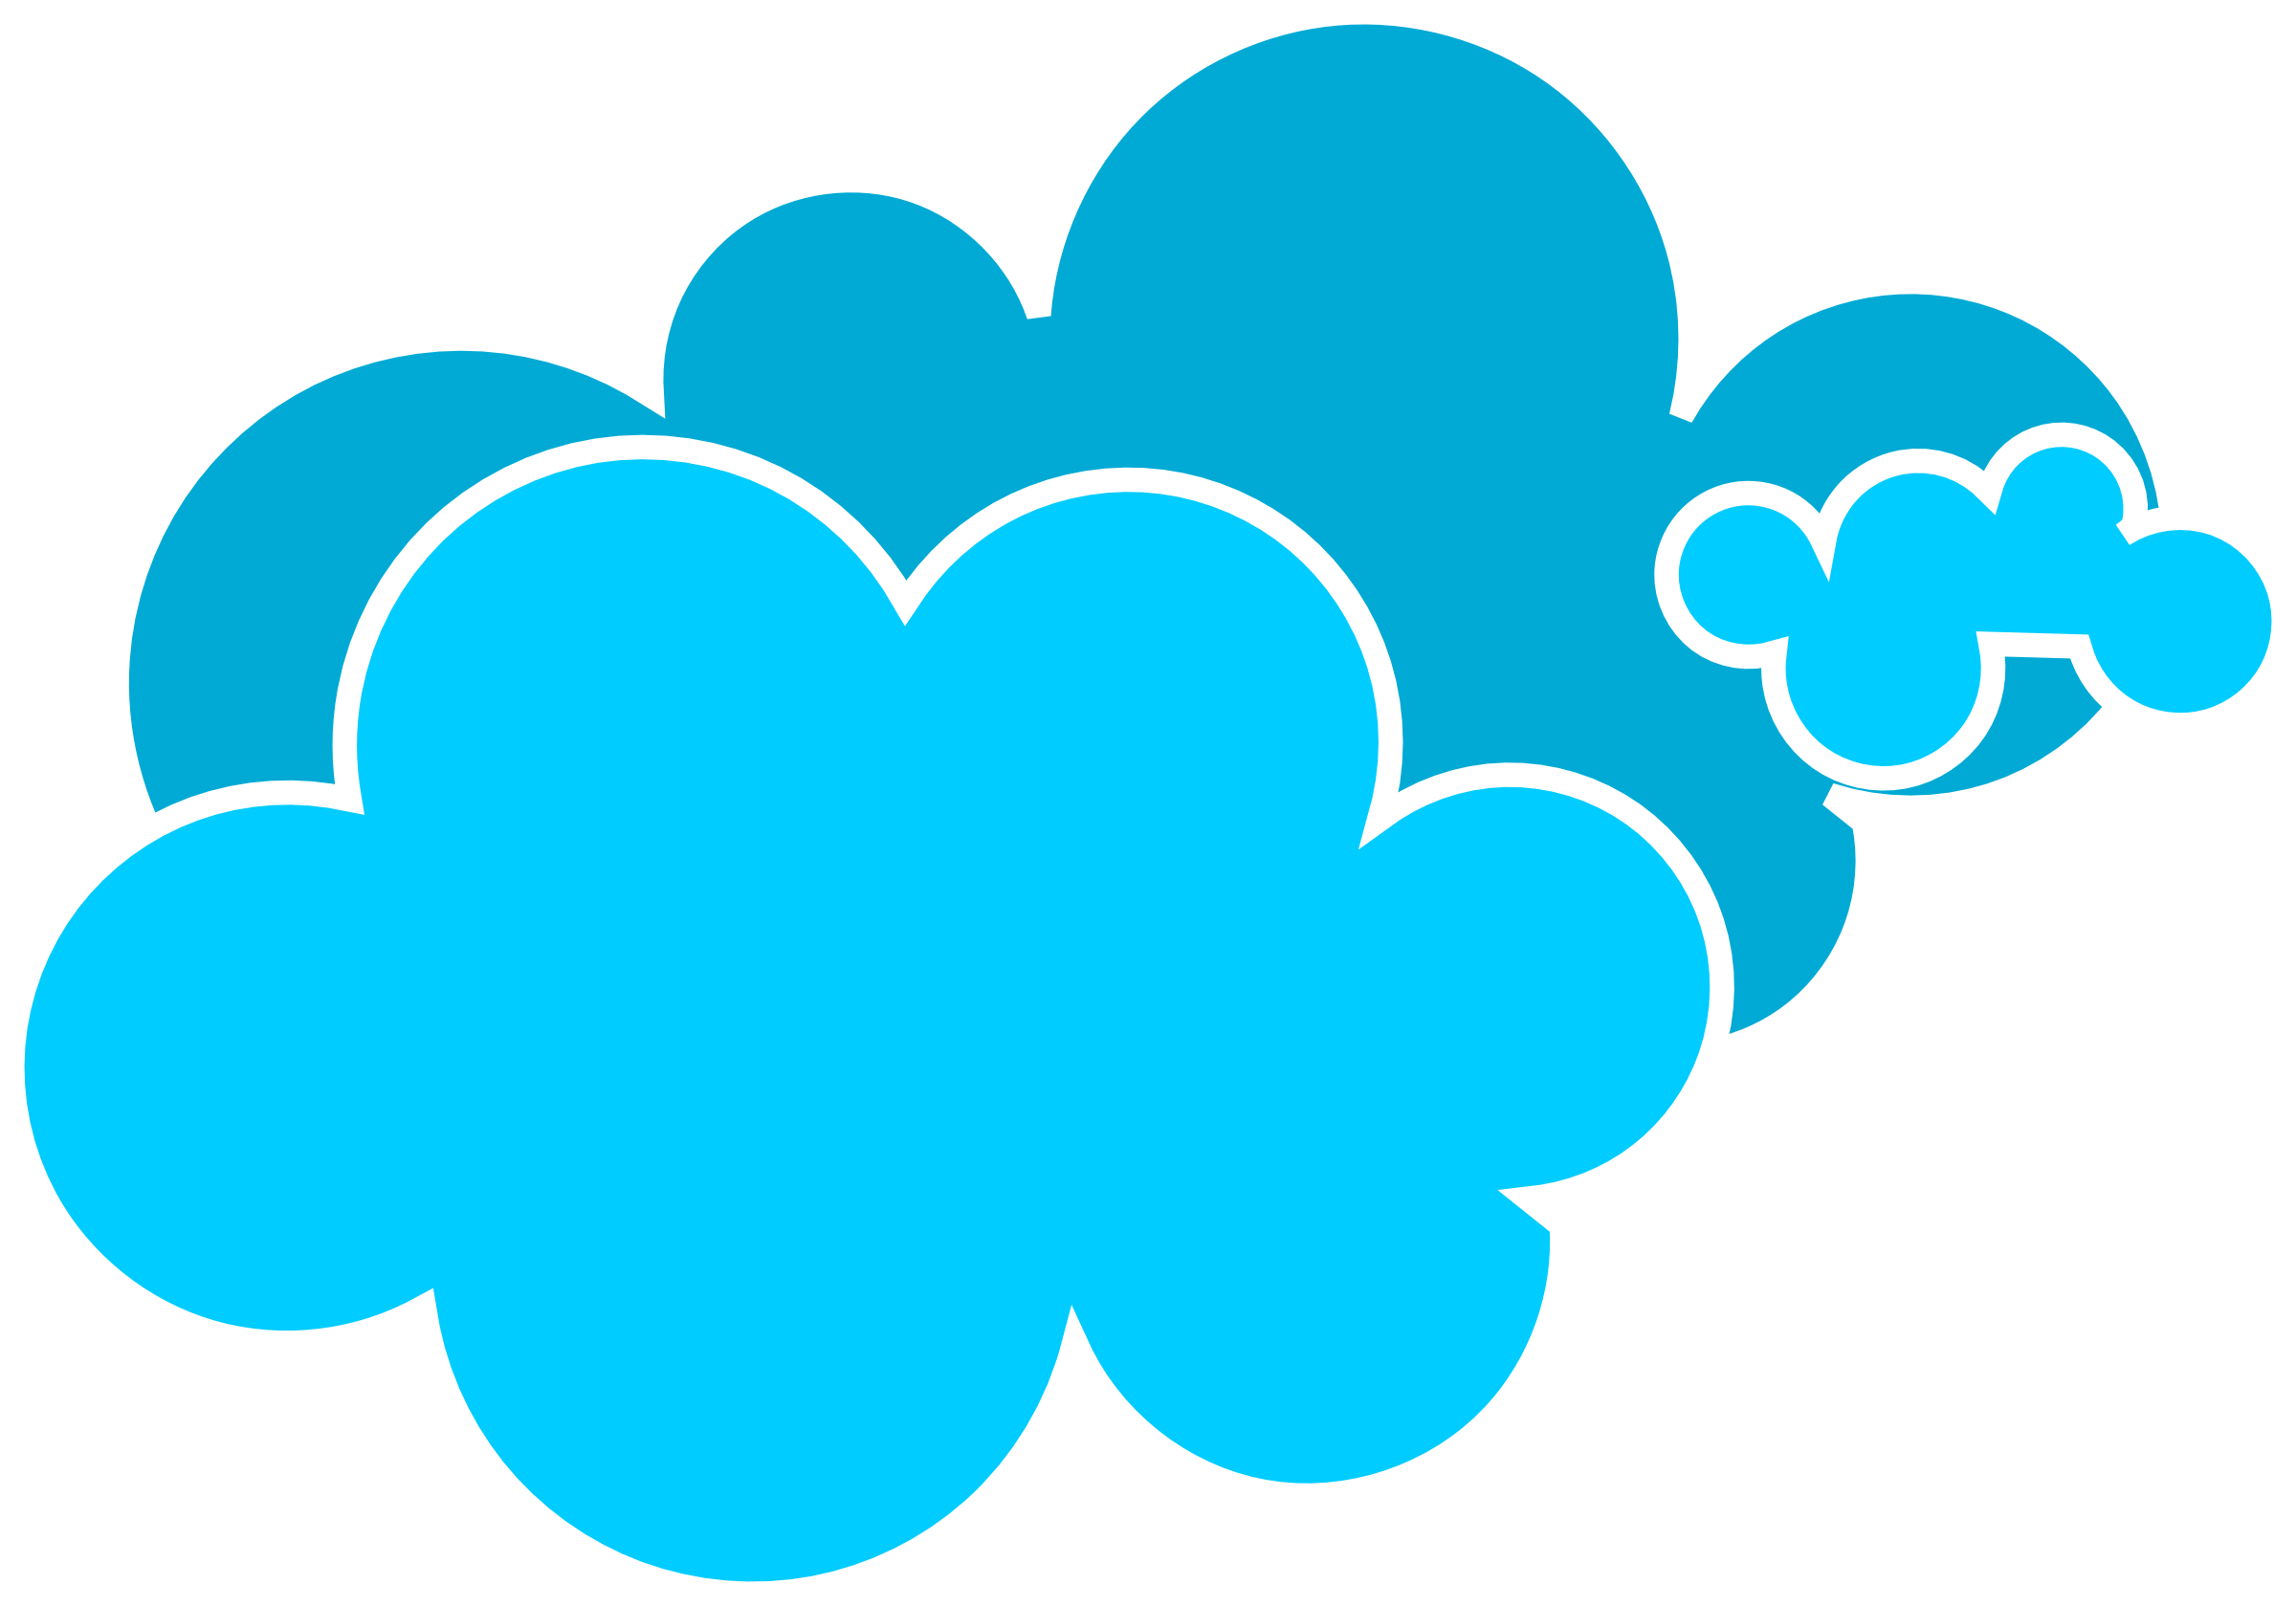 Cloud blue clipart svg royalty free stock Rain cloud blue cloud clipart - WikiClipArt svg royalty free stock